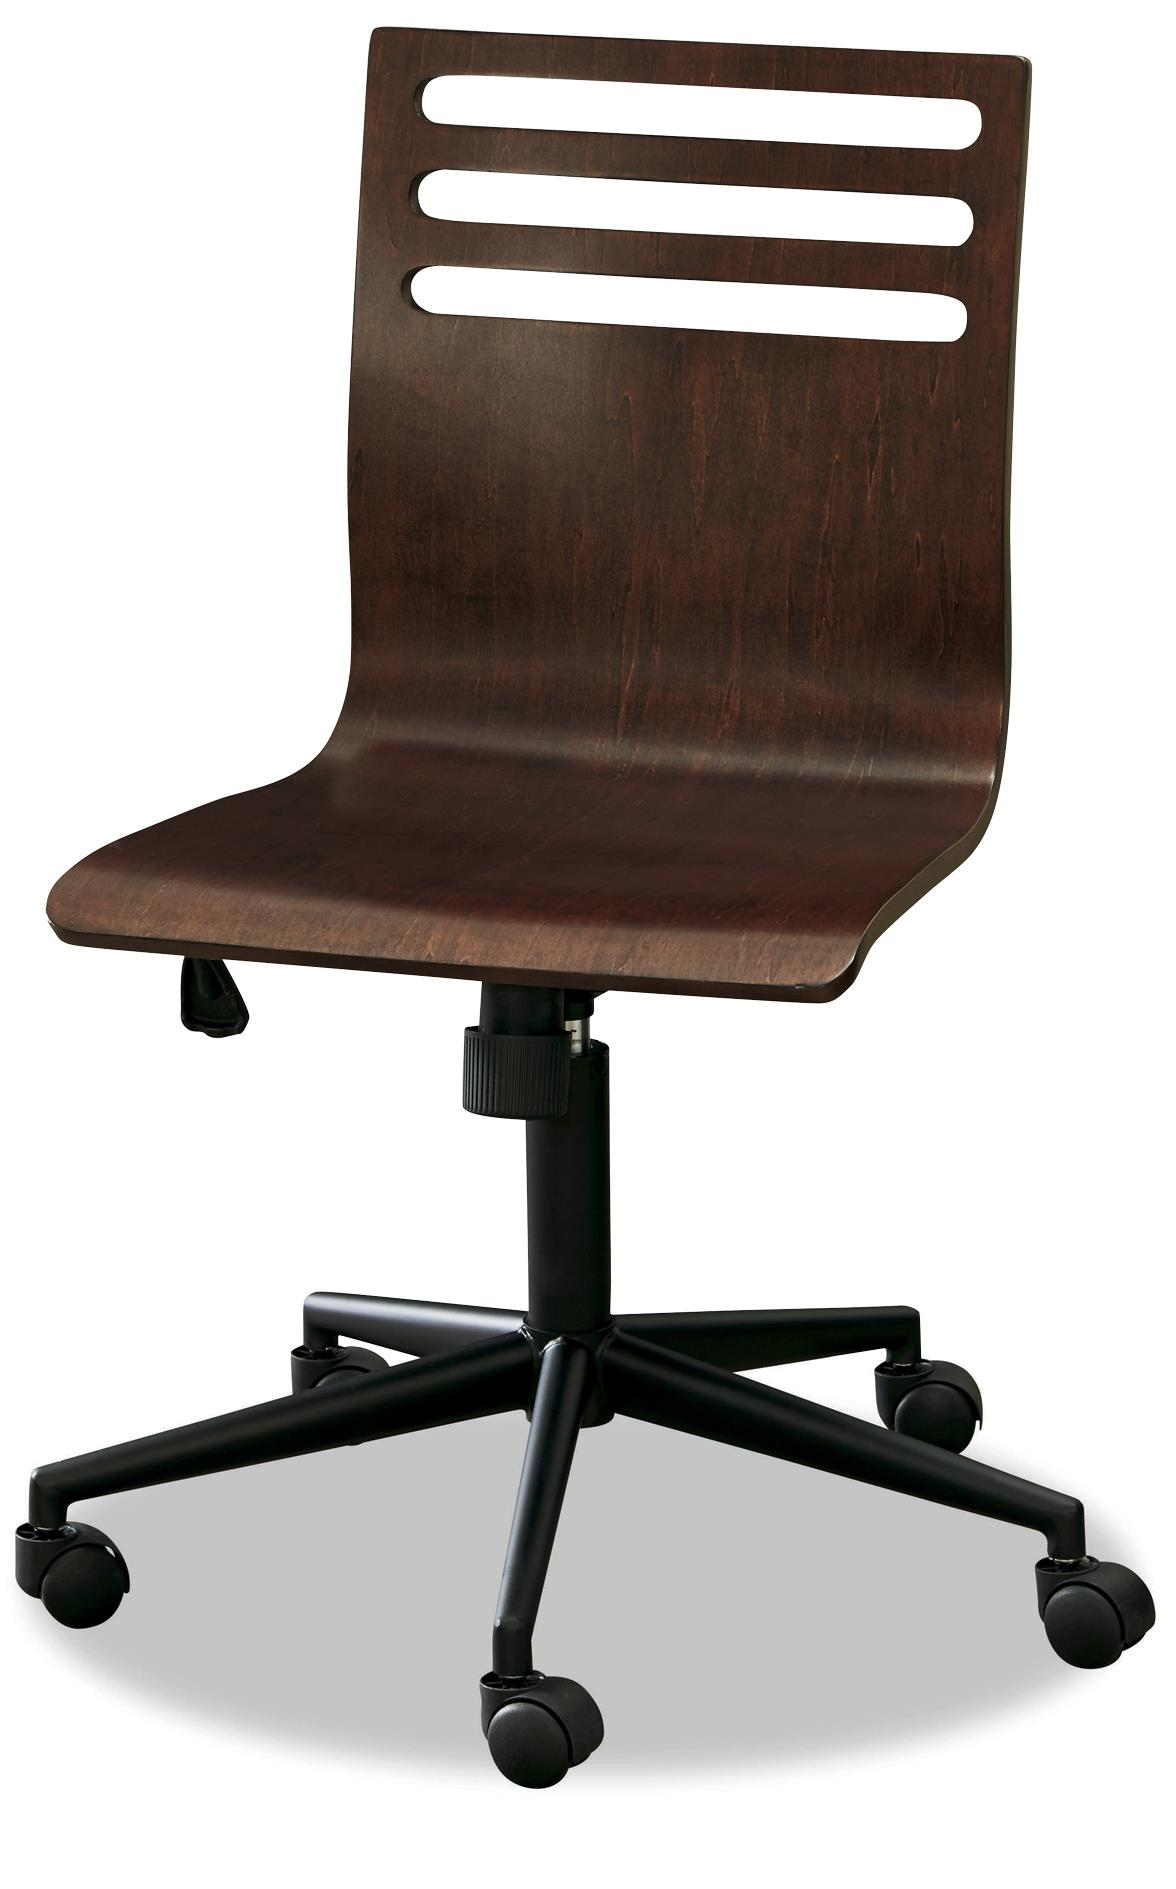 Smartstuff Classics 4.0 Swivel Desk Chair - Item Number: 1312071